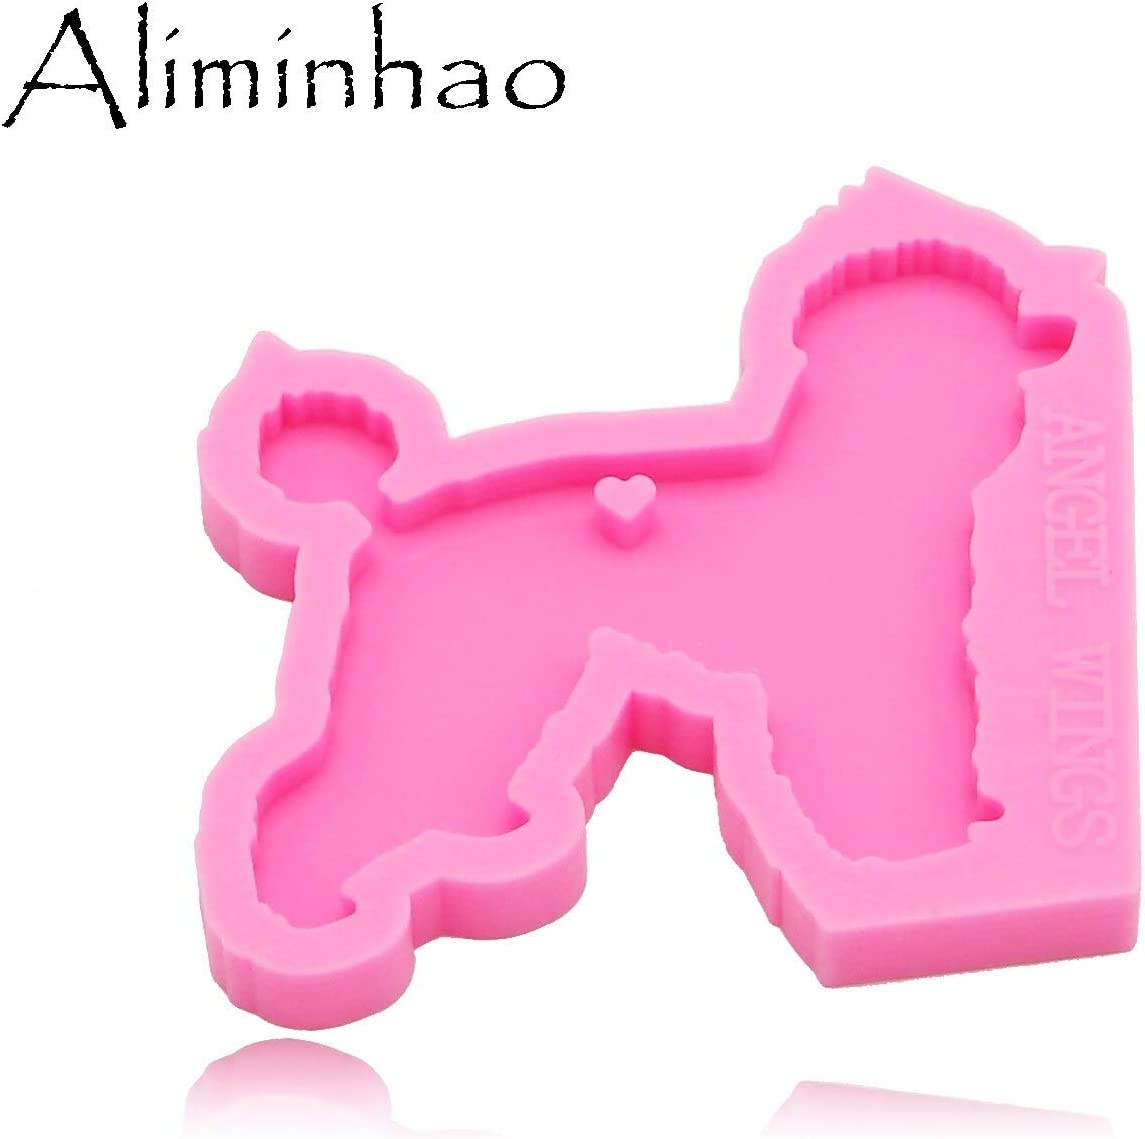 DY0128 Shiny Poodle Silicone Molds for DIY Key Ring epoxy Resin Mold Dog Craft Custom Keychain